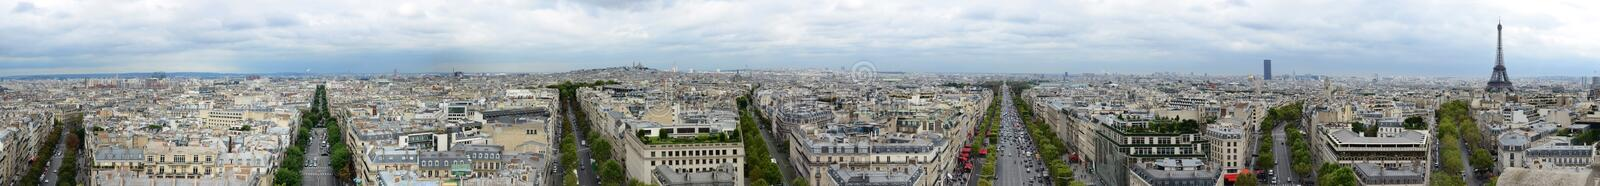 Paris panorâmico foto de stock royalty free